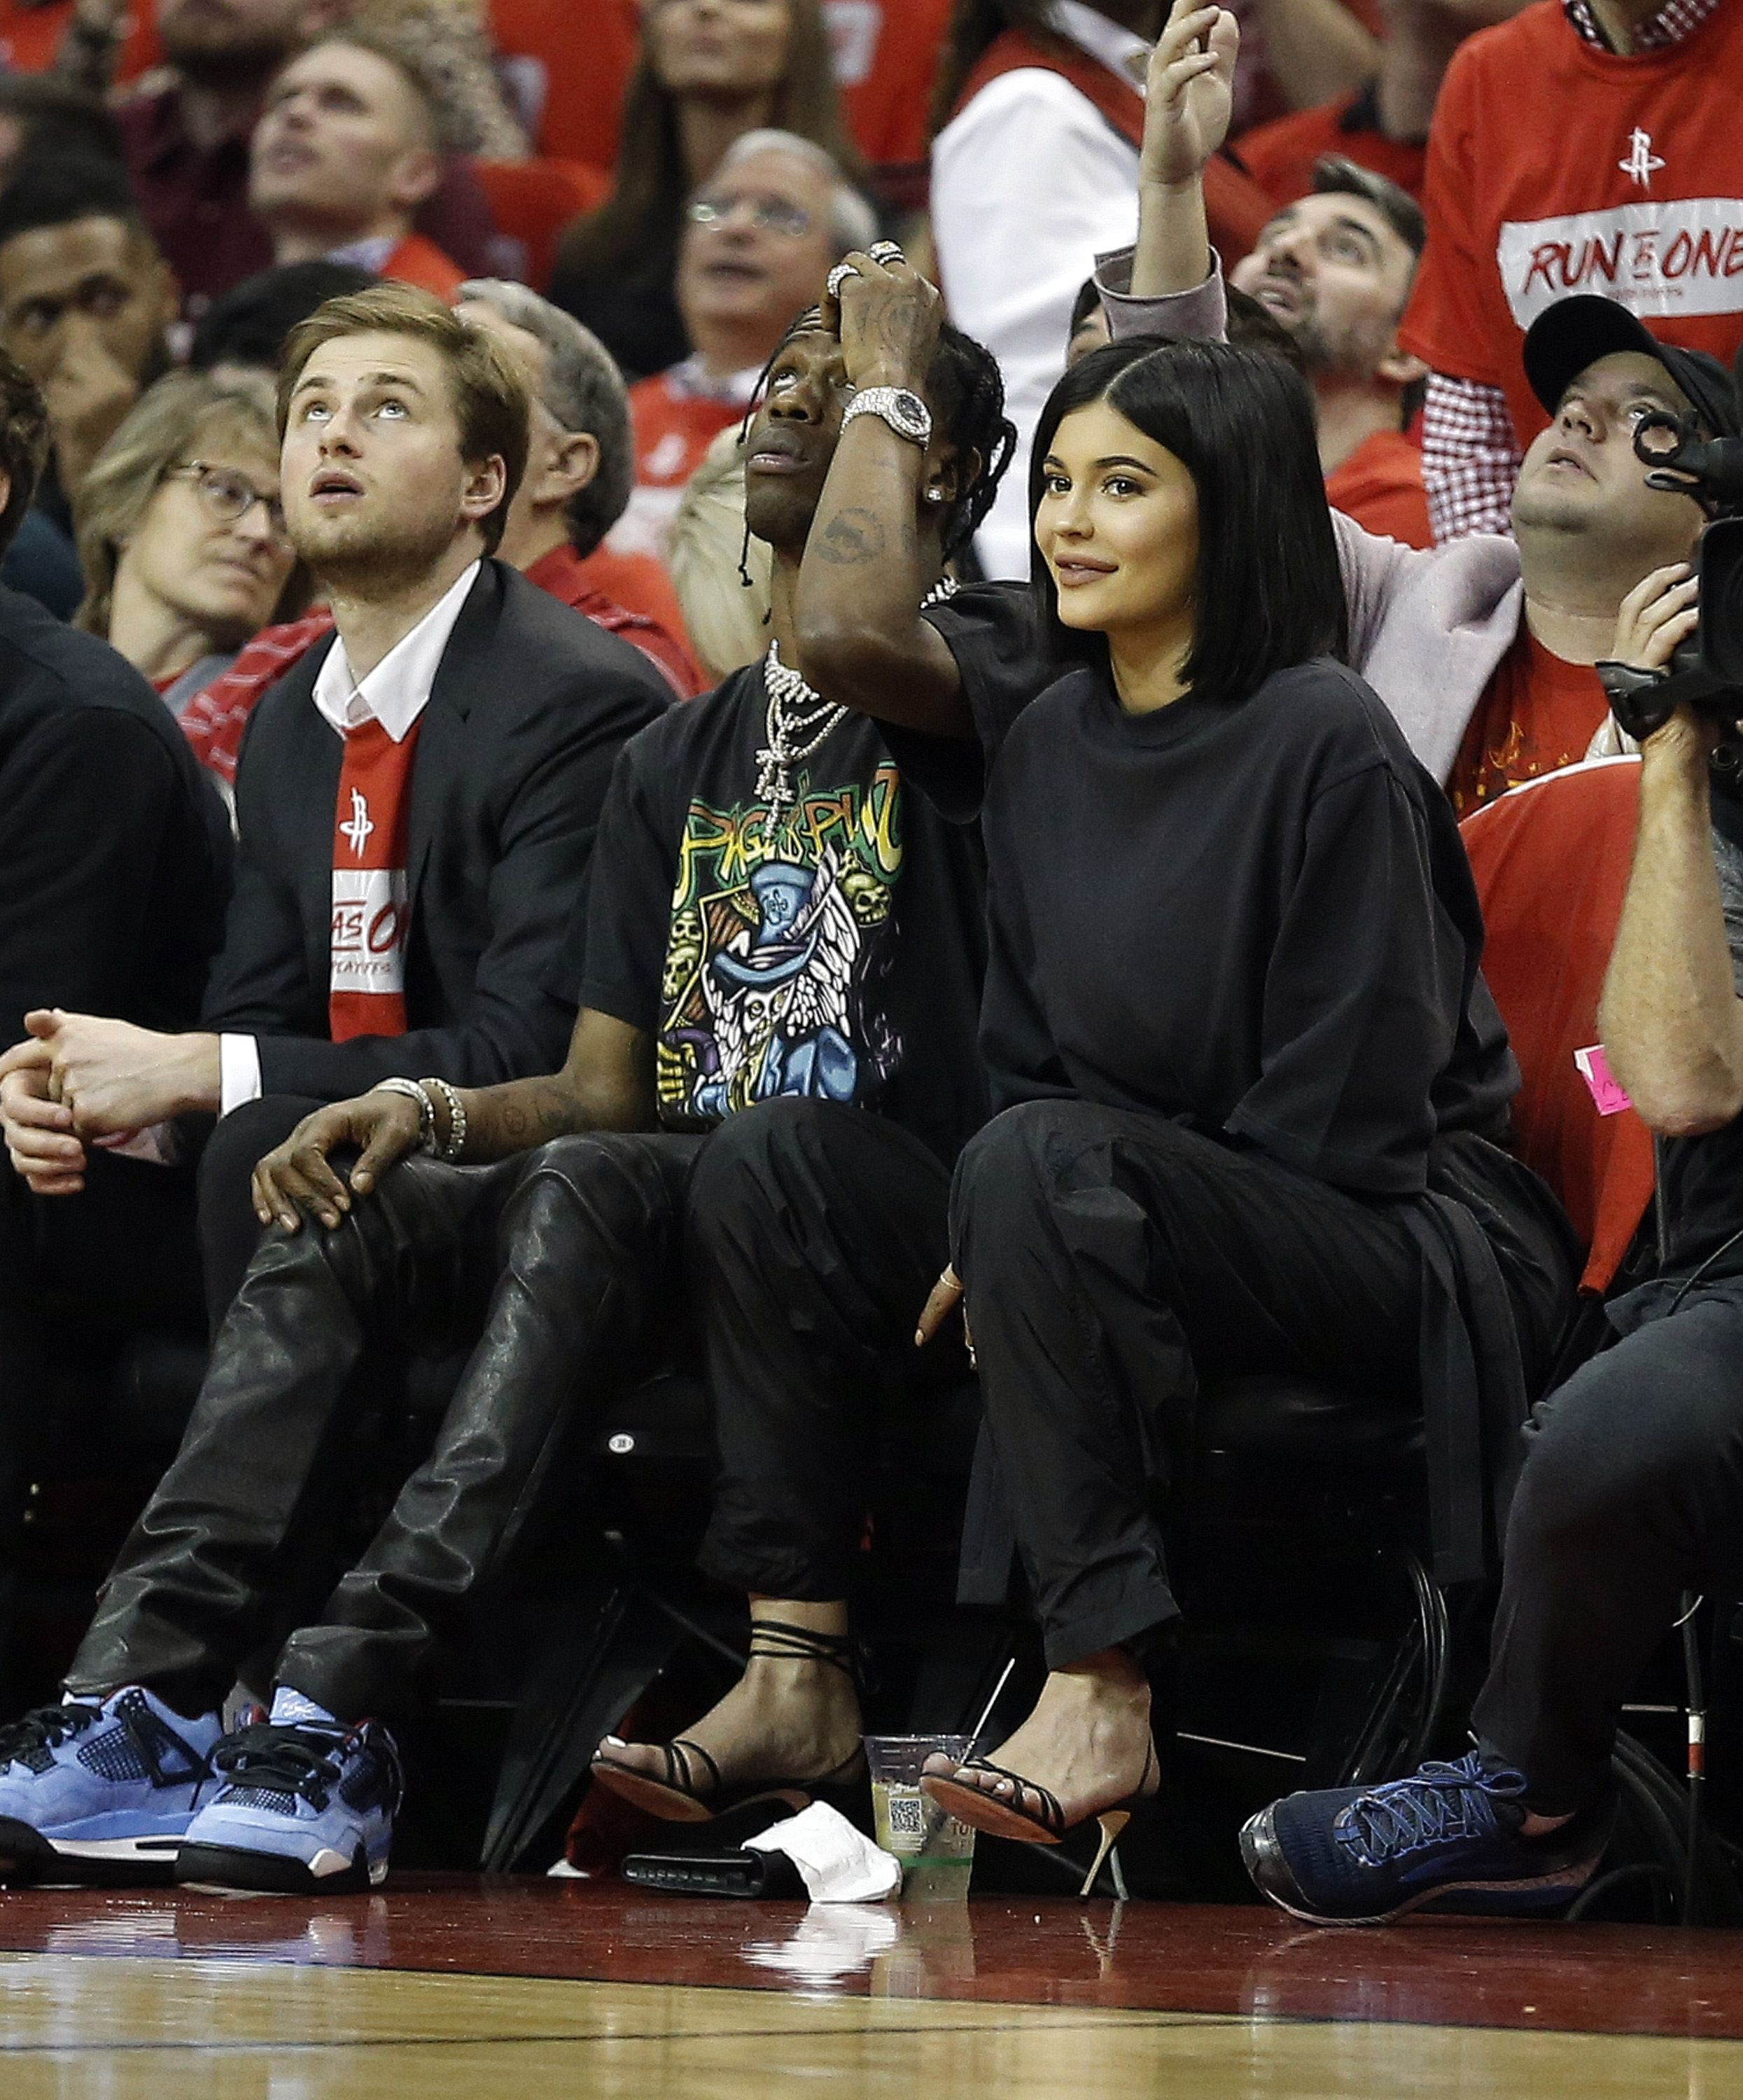 Kylie Jenner And Travis Scott Spotted Courtside At Basketball Game Kylie Jenner And Travis Scott Go On Date At Houston Rockets Game